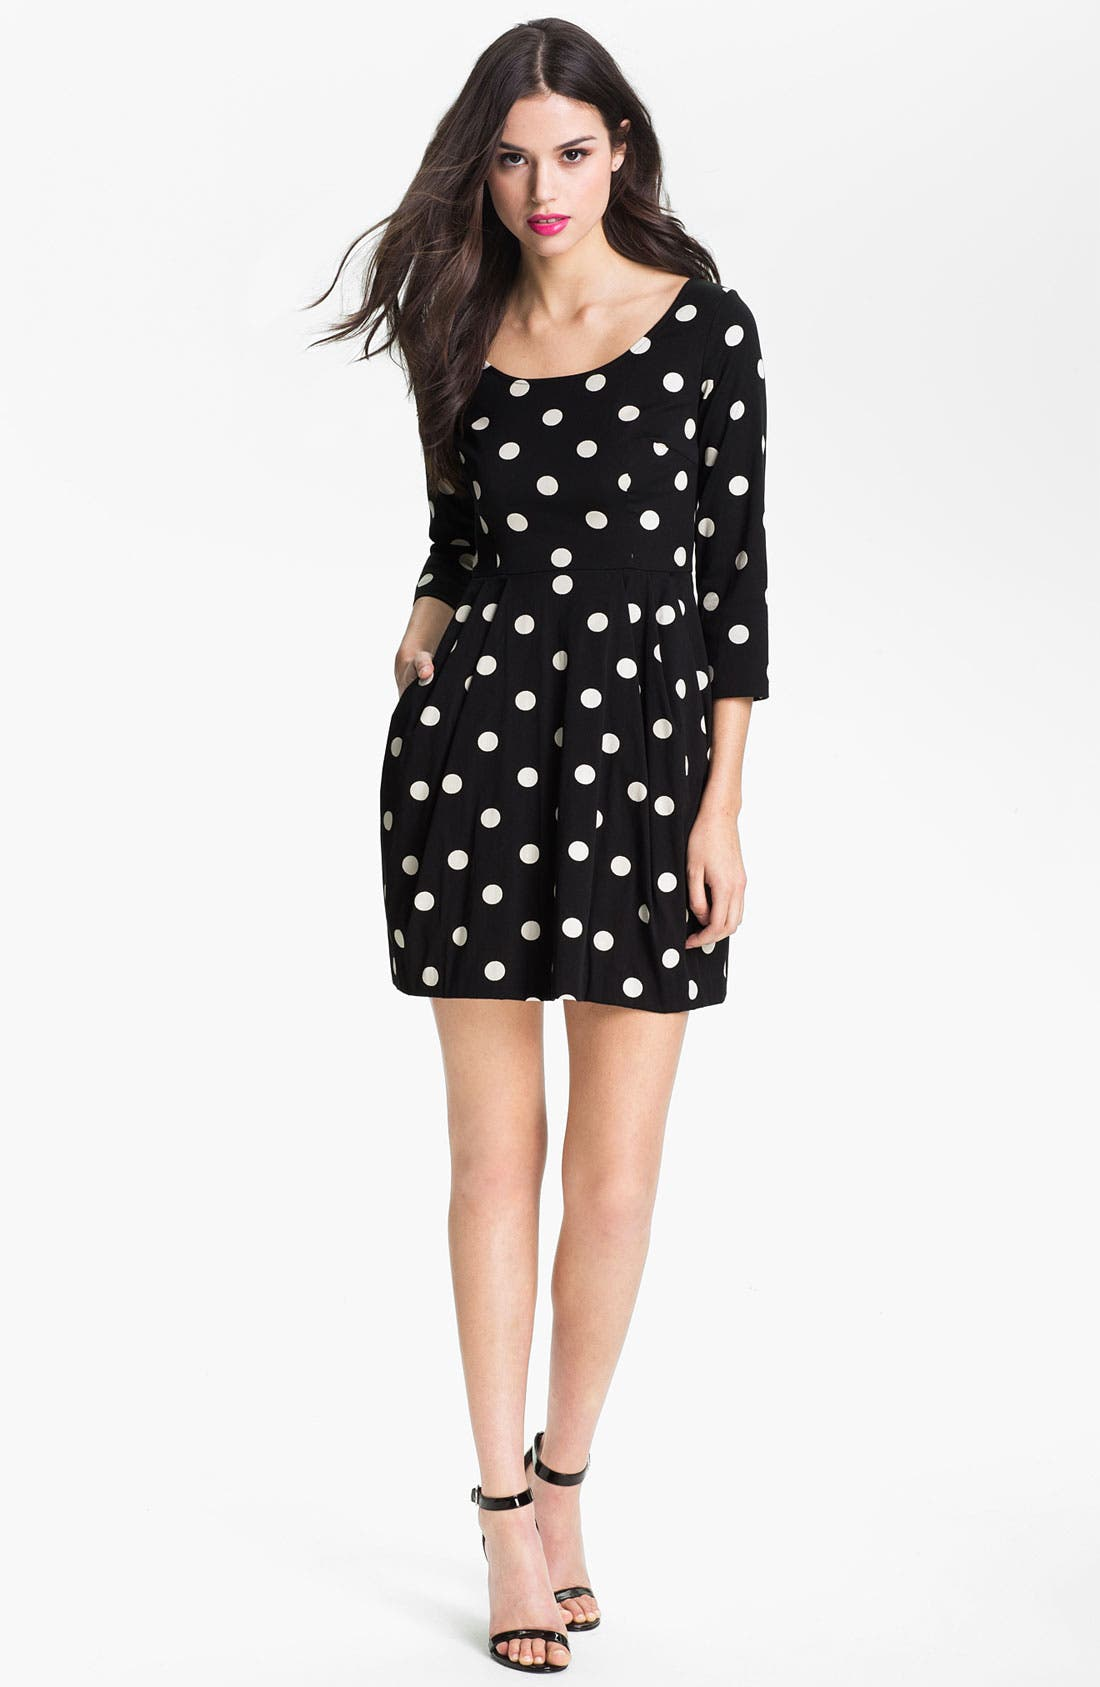 Alternate Image 1 Selected - Betsey Johnson Polka Dot Ponte Knit Dress